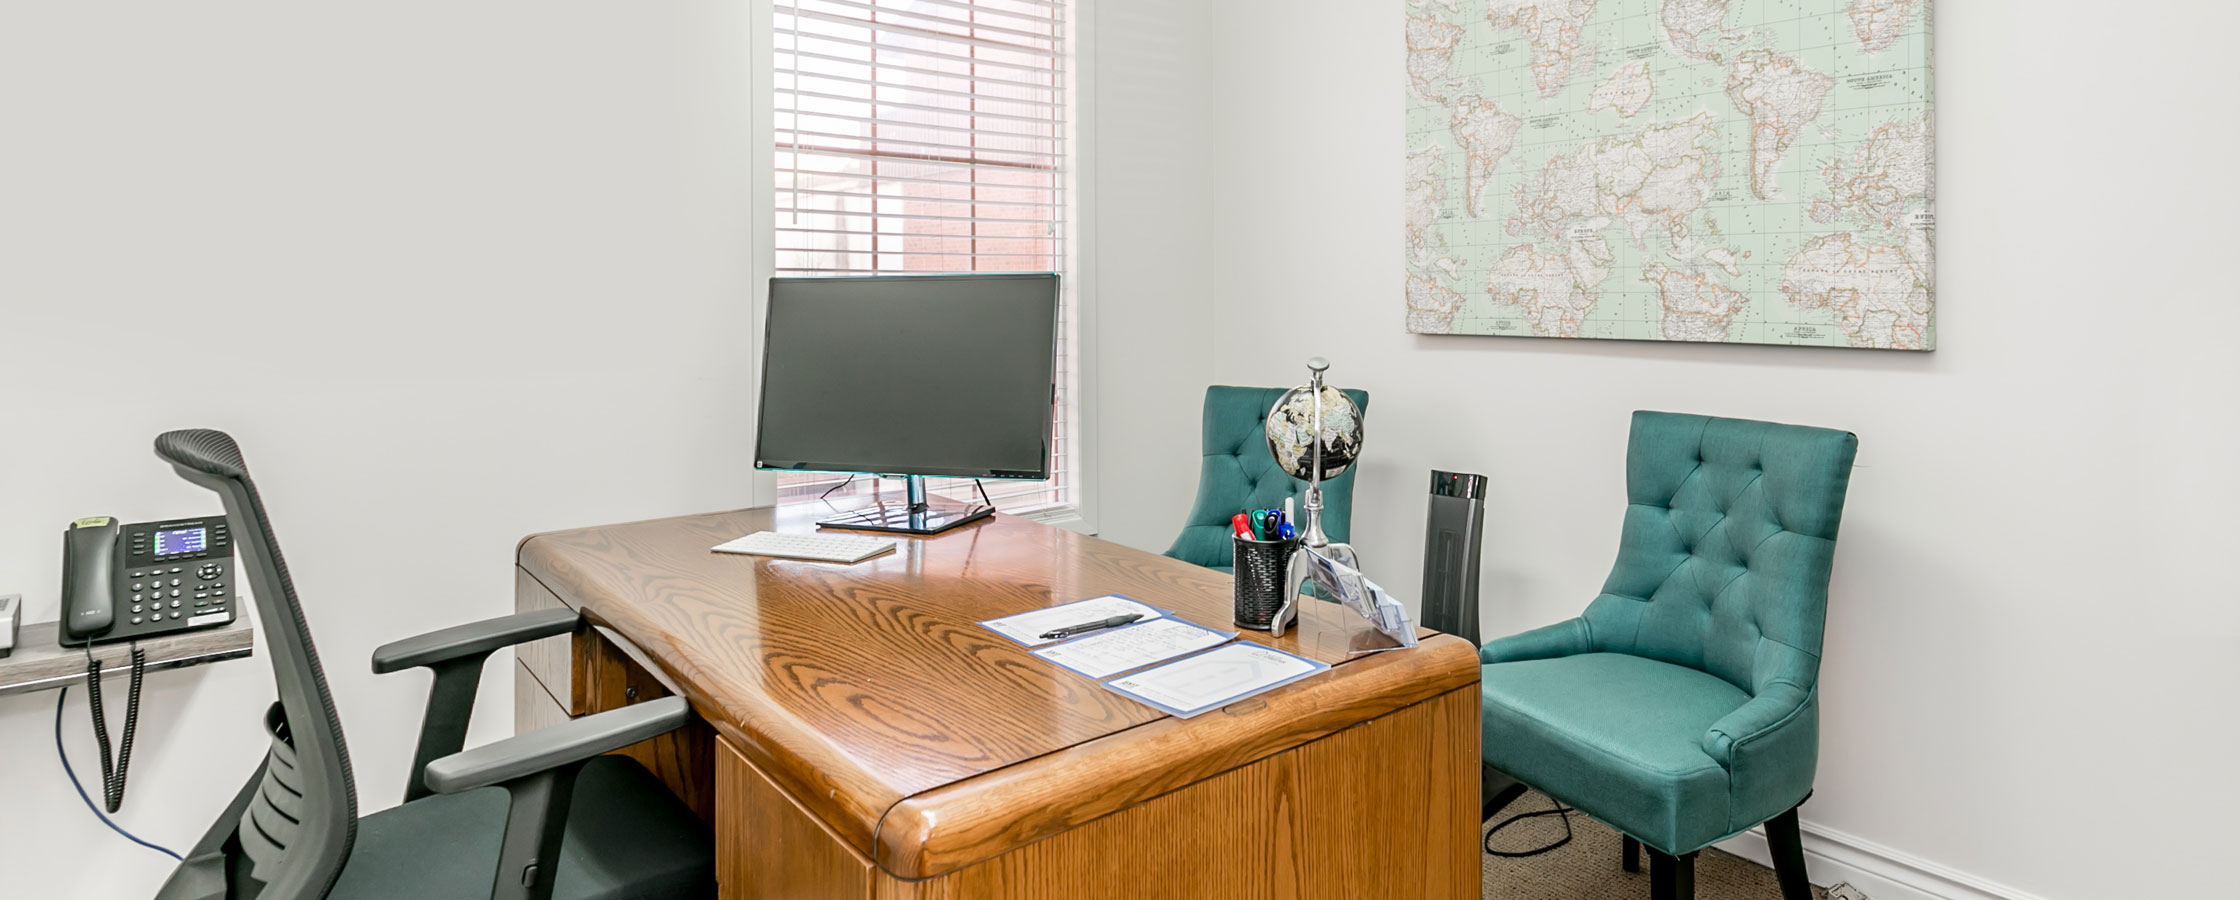 co-working orillia, private offices, shared space orillia, offices, professional suites, cowork